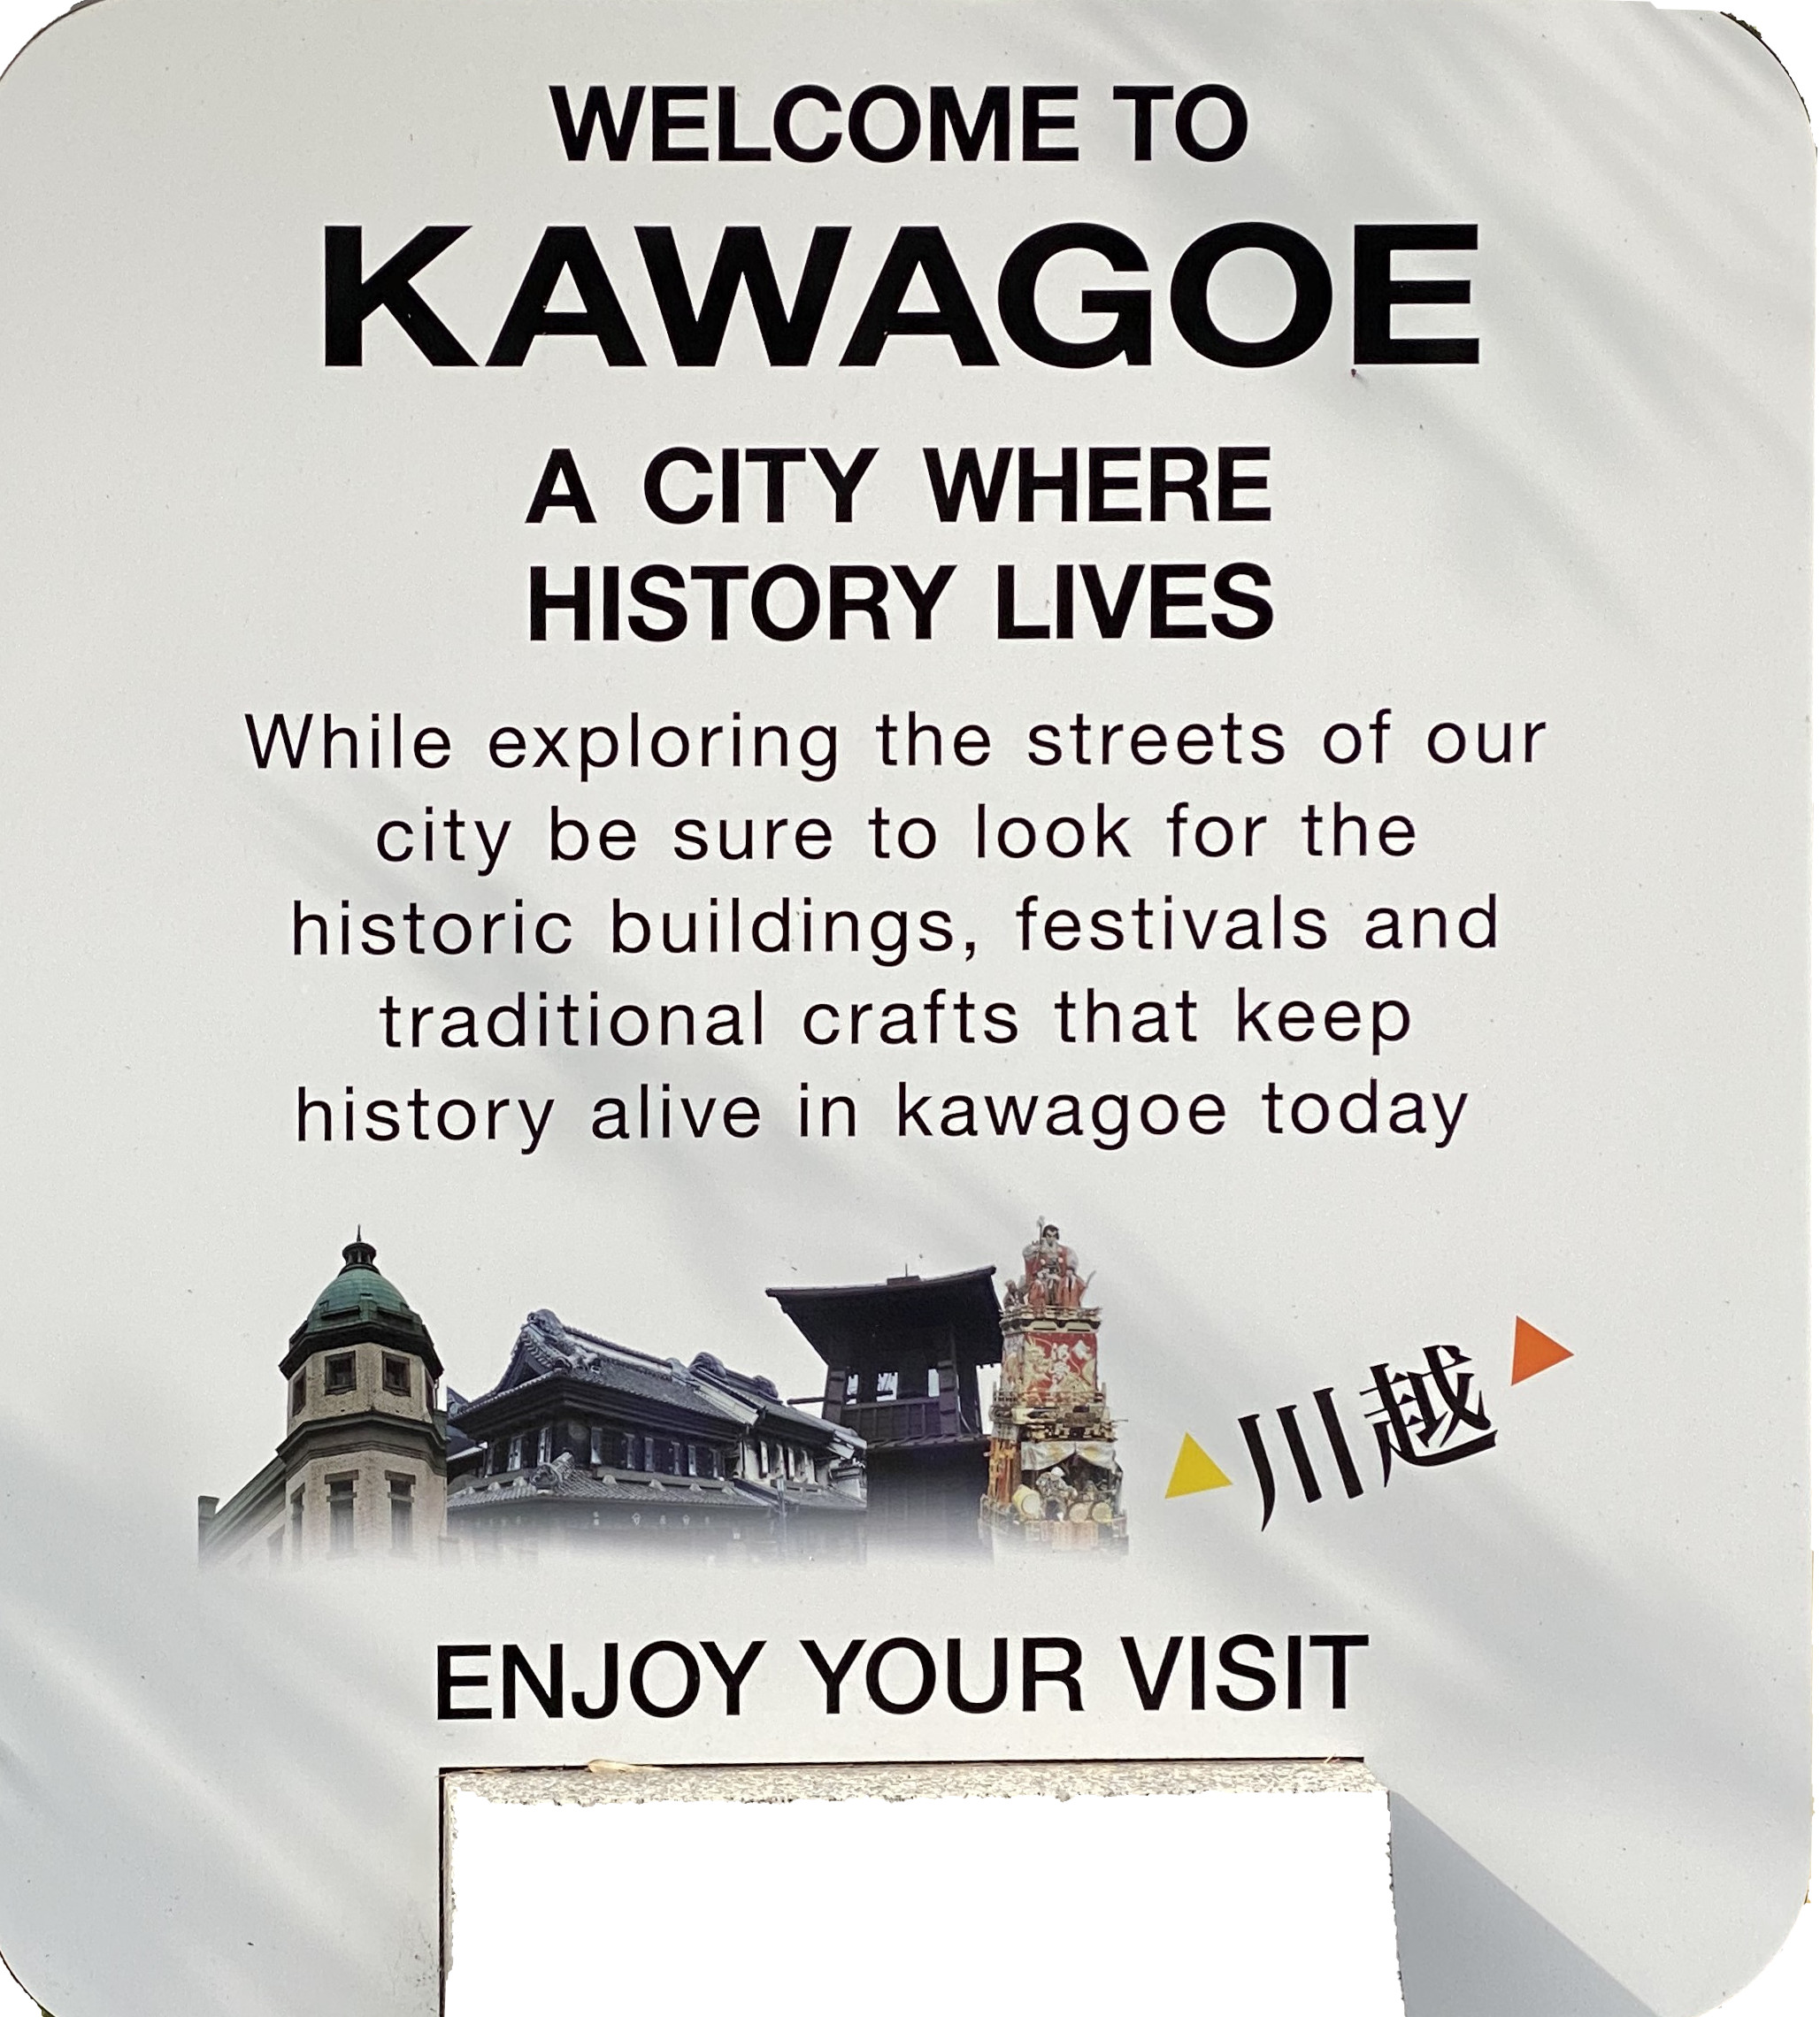 WELCOME TO KAWAGOE A CITY WHERE HISTORY LIVES